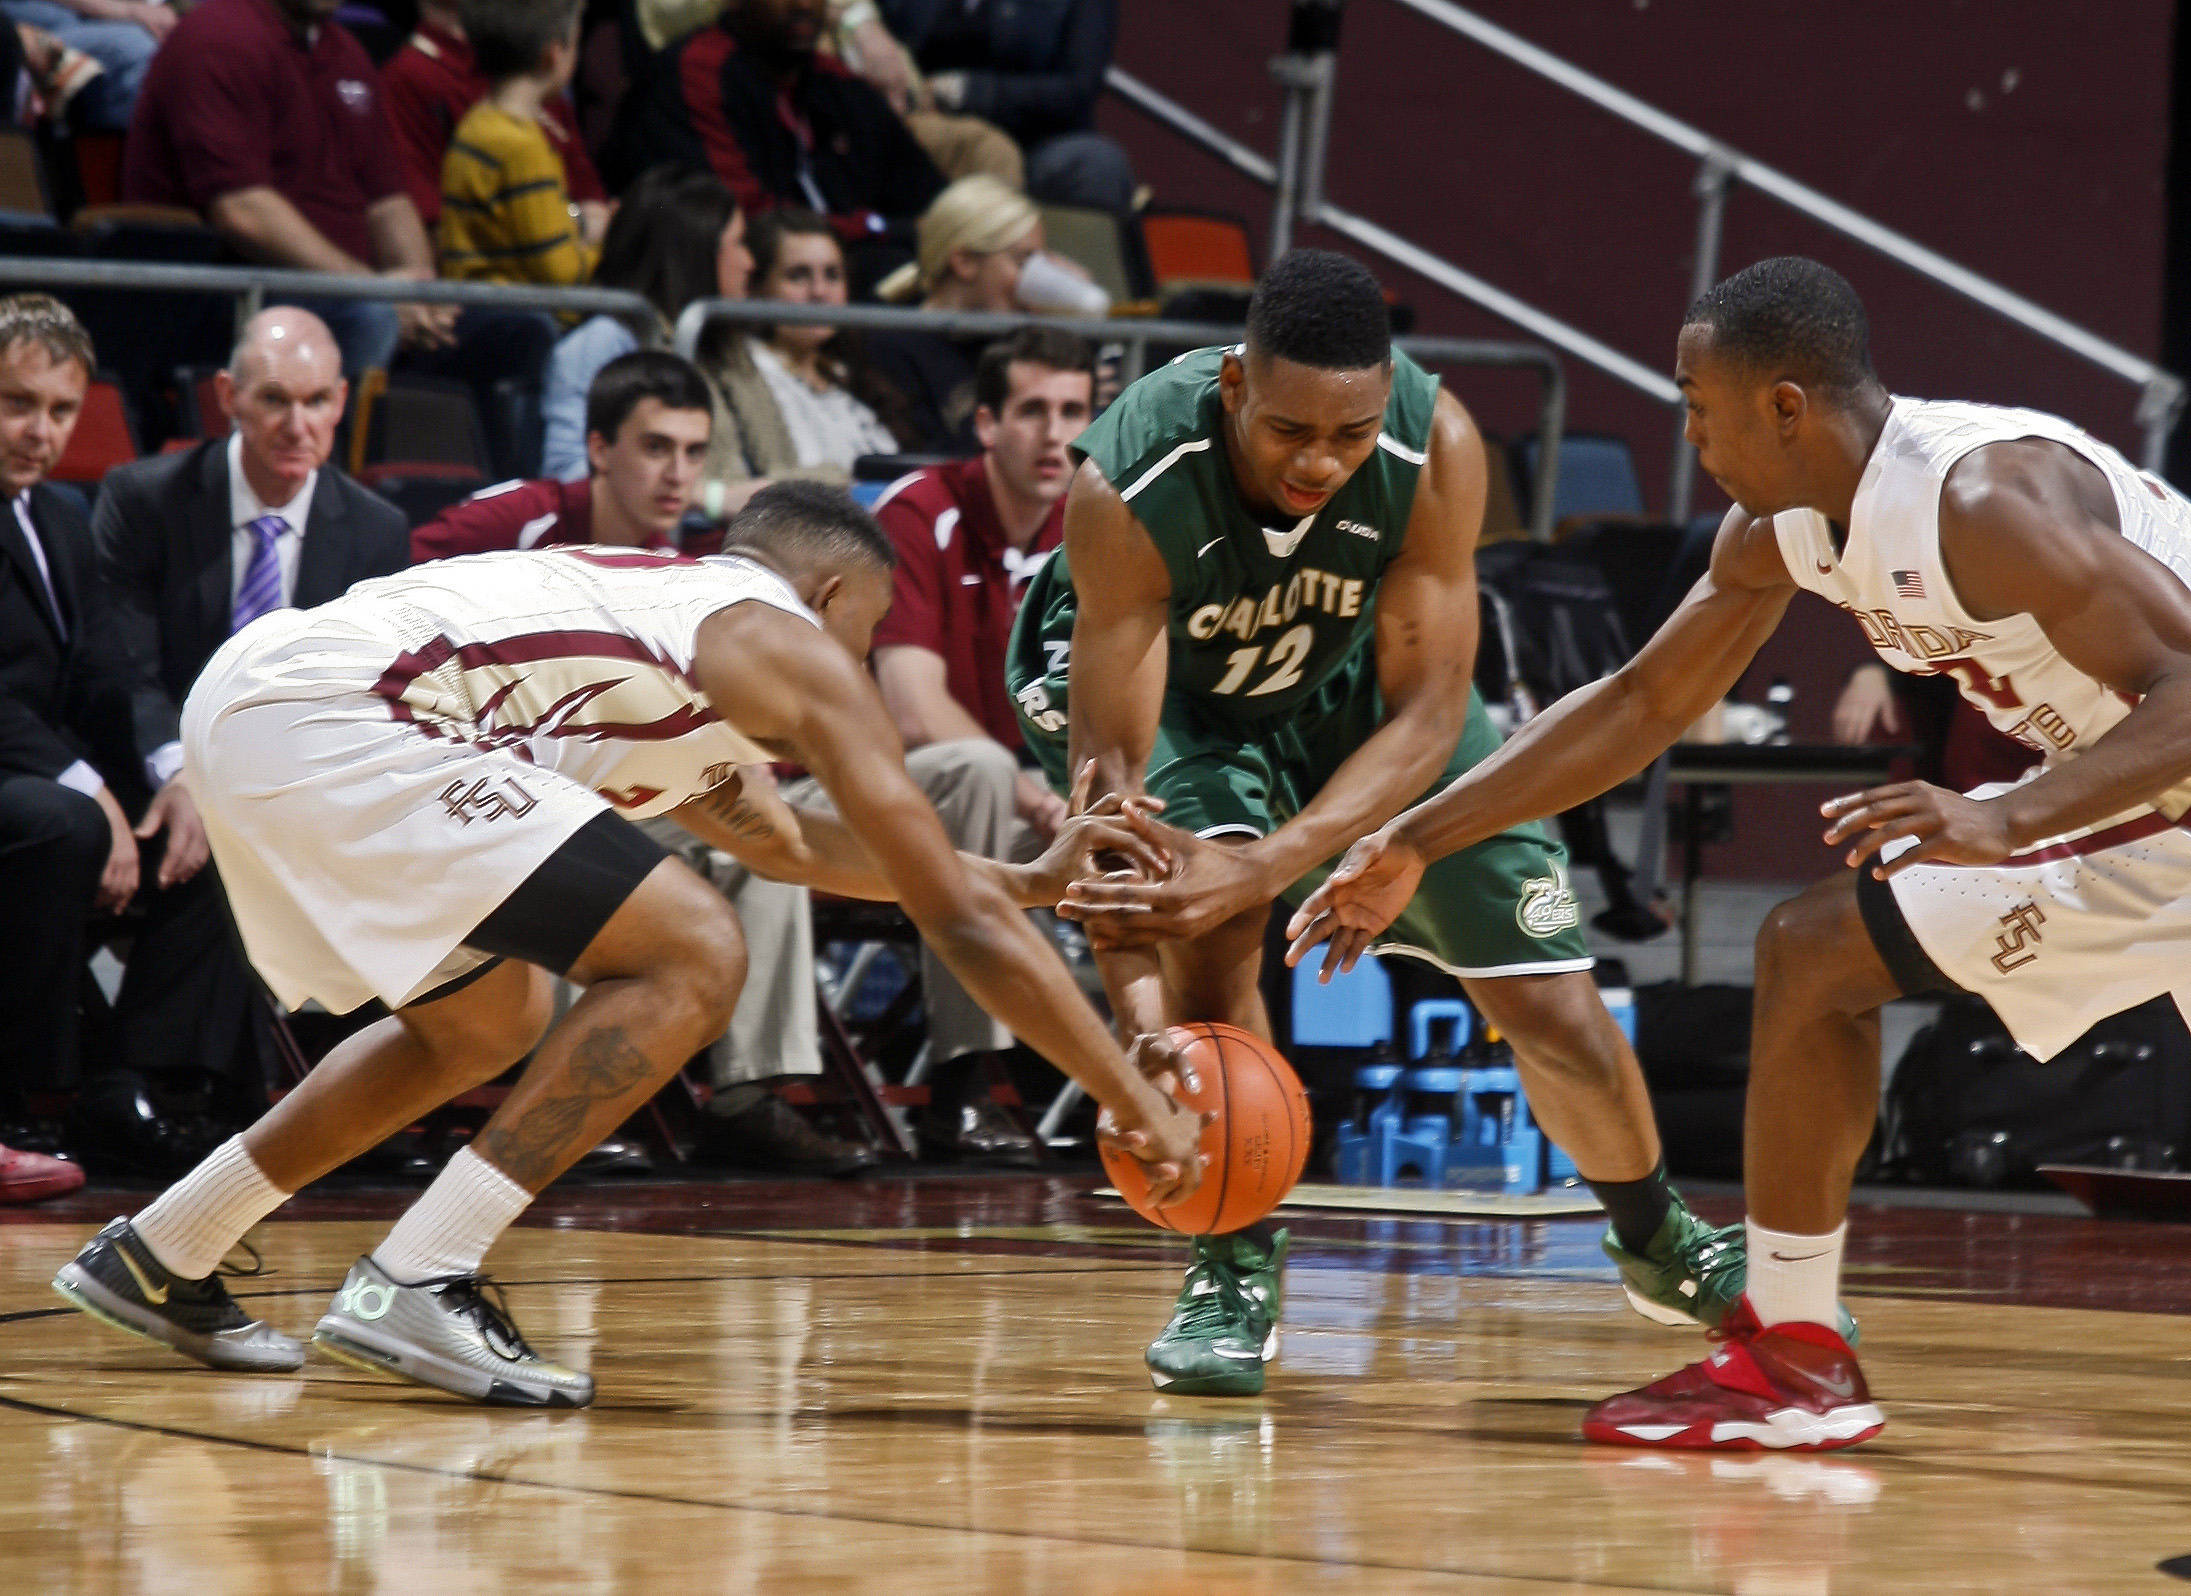 Dec 17, 2013; Tallahassee, FL, USA; Florida State Seminoles guard Ian Miller (30) and Charlotte 49ers center Mike Thorne Jr. (12) and Florida State Seminoles guard Montay Brandon (32) go for a loose ball in the first half of their game at the Donald L. Tucker Center. Mandatory Credit: Phil Sears-USA TODAY Sports